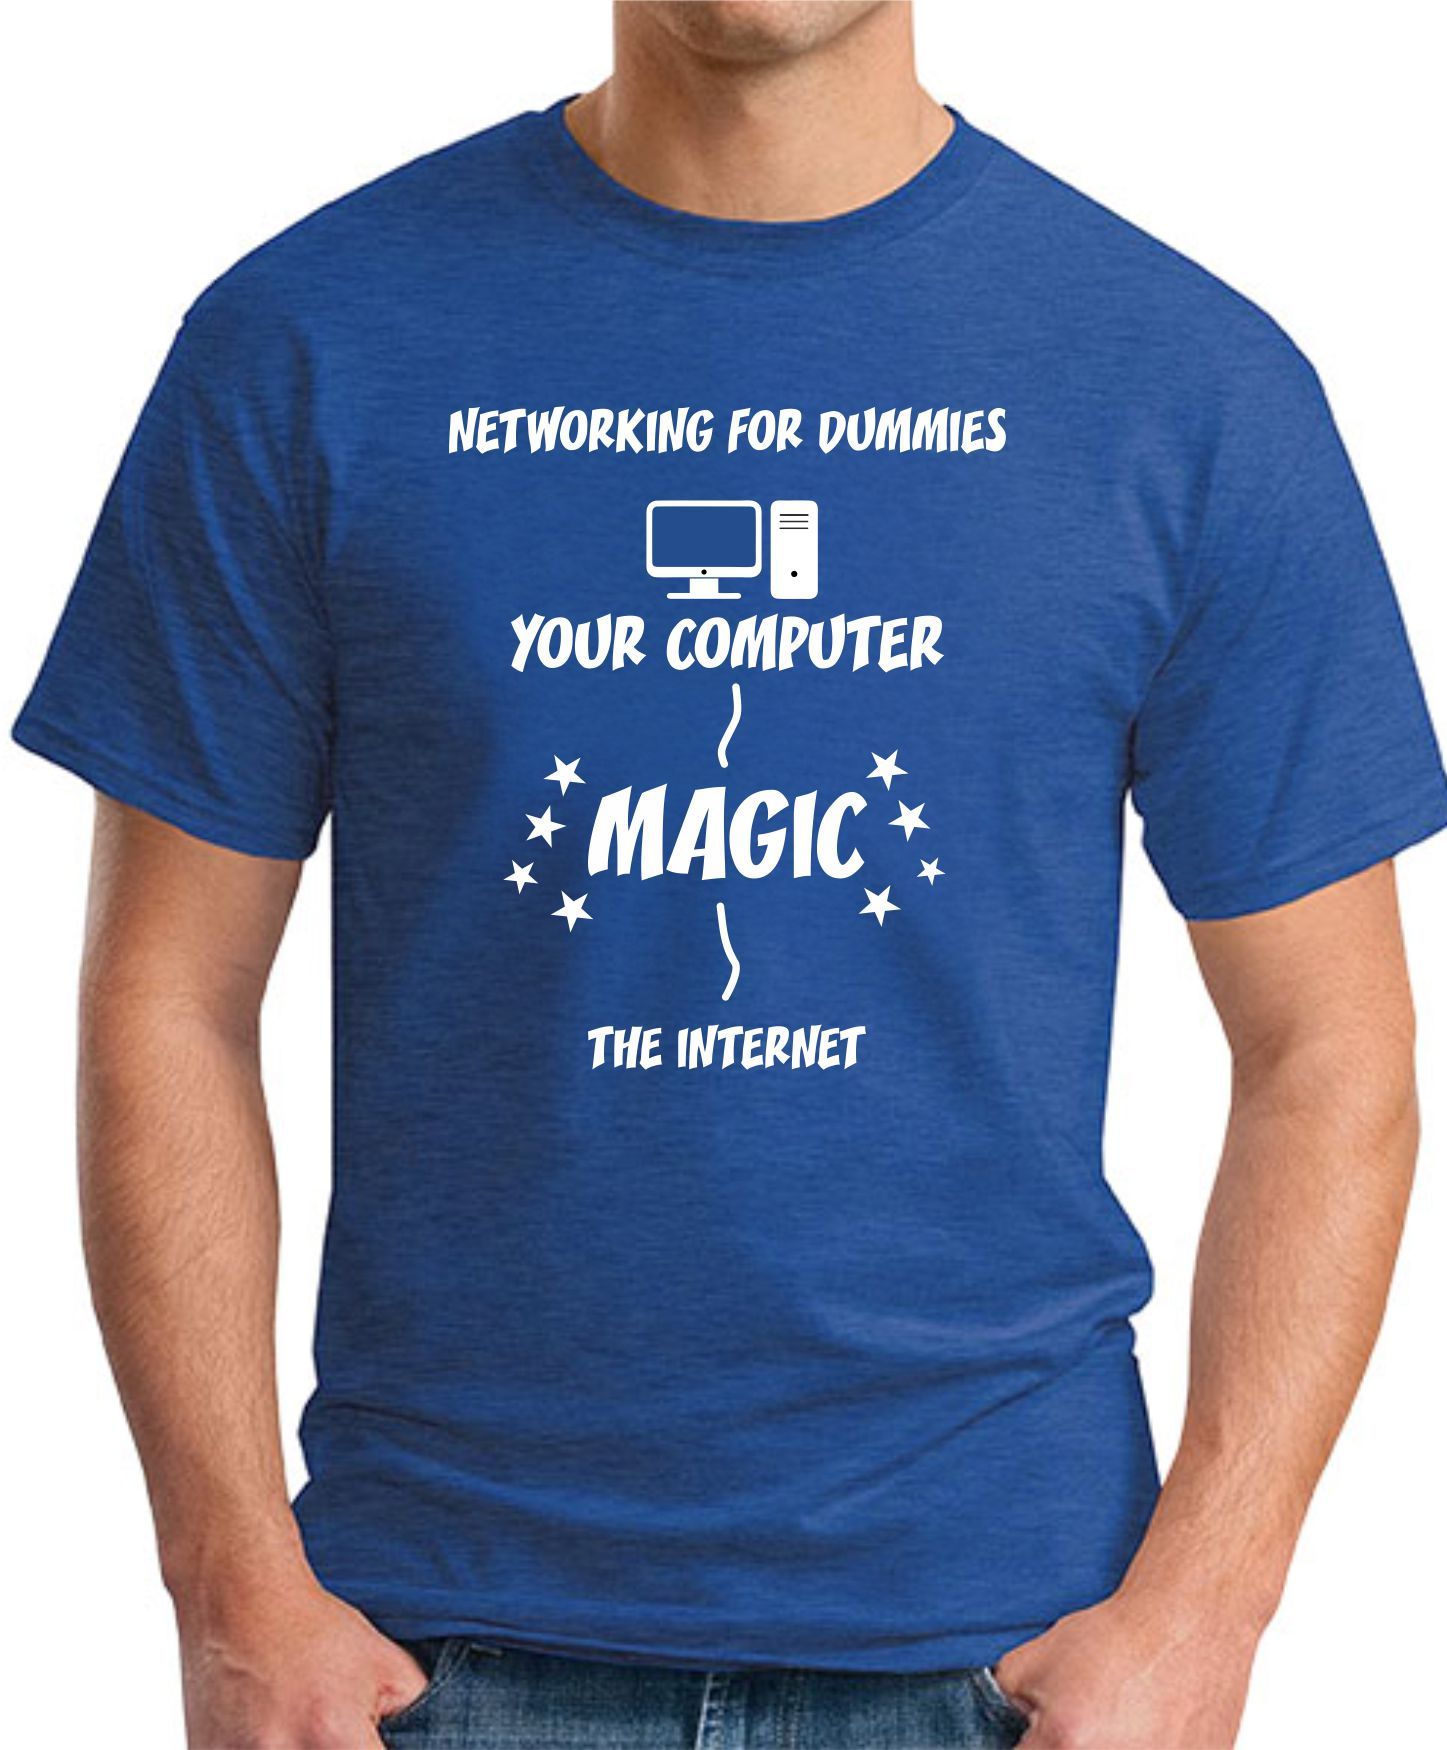 NETWORKING FOR DUMMIES royal blue